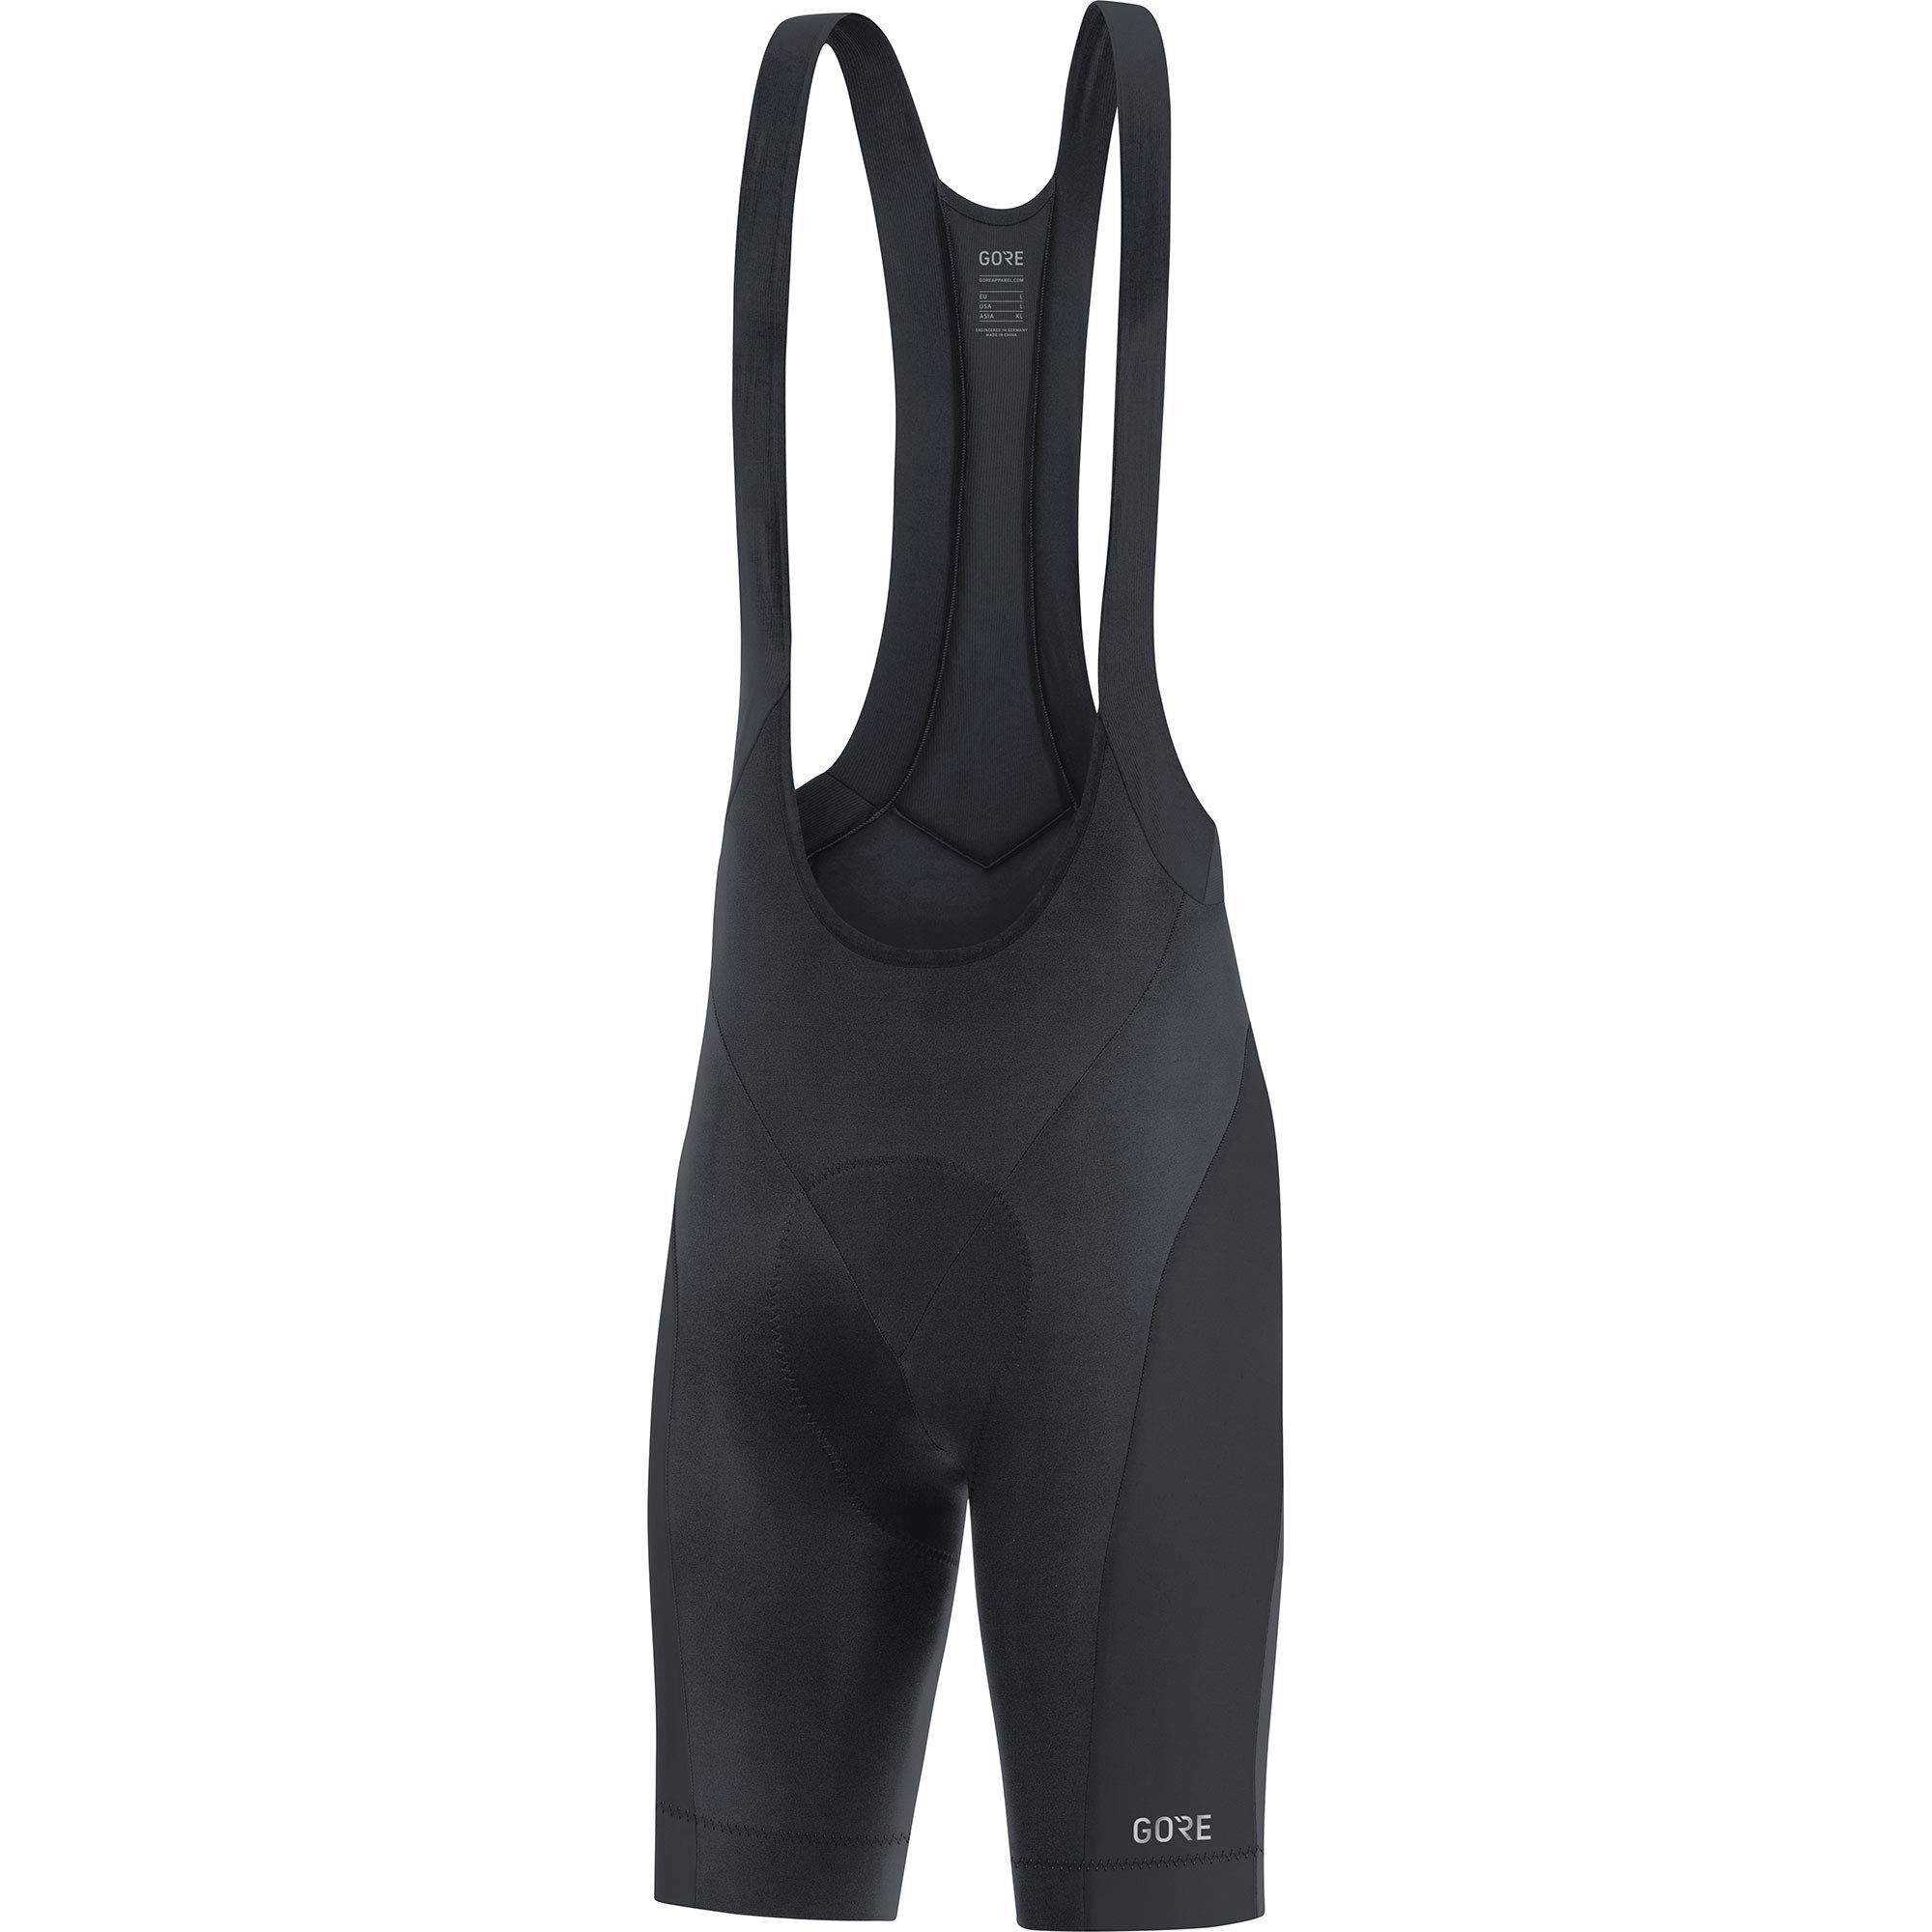 GORE Wear C3 Men's Short Cycling Bib Shorts With Seat Insert, S, Black